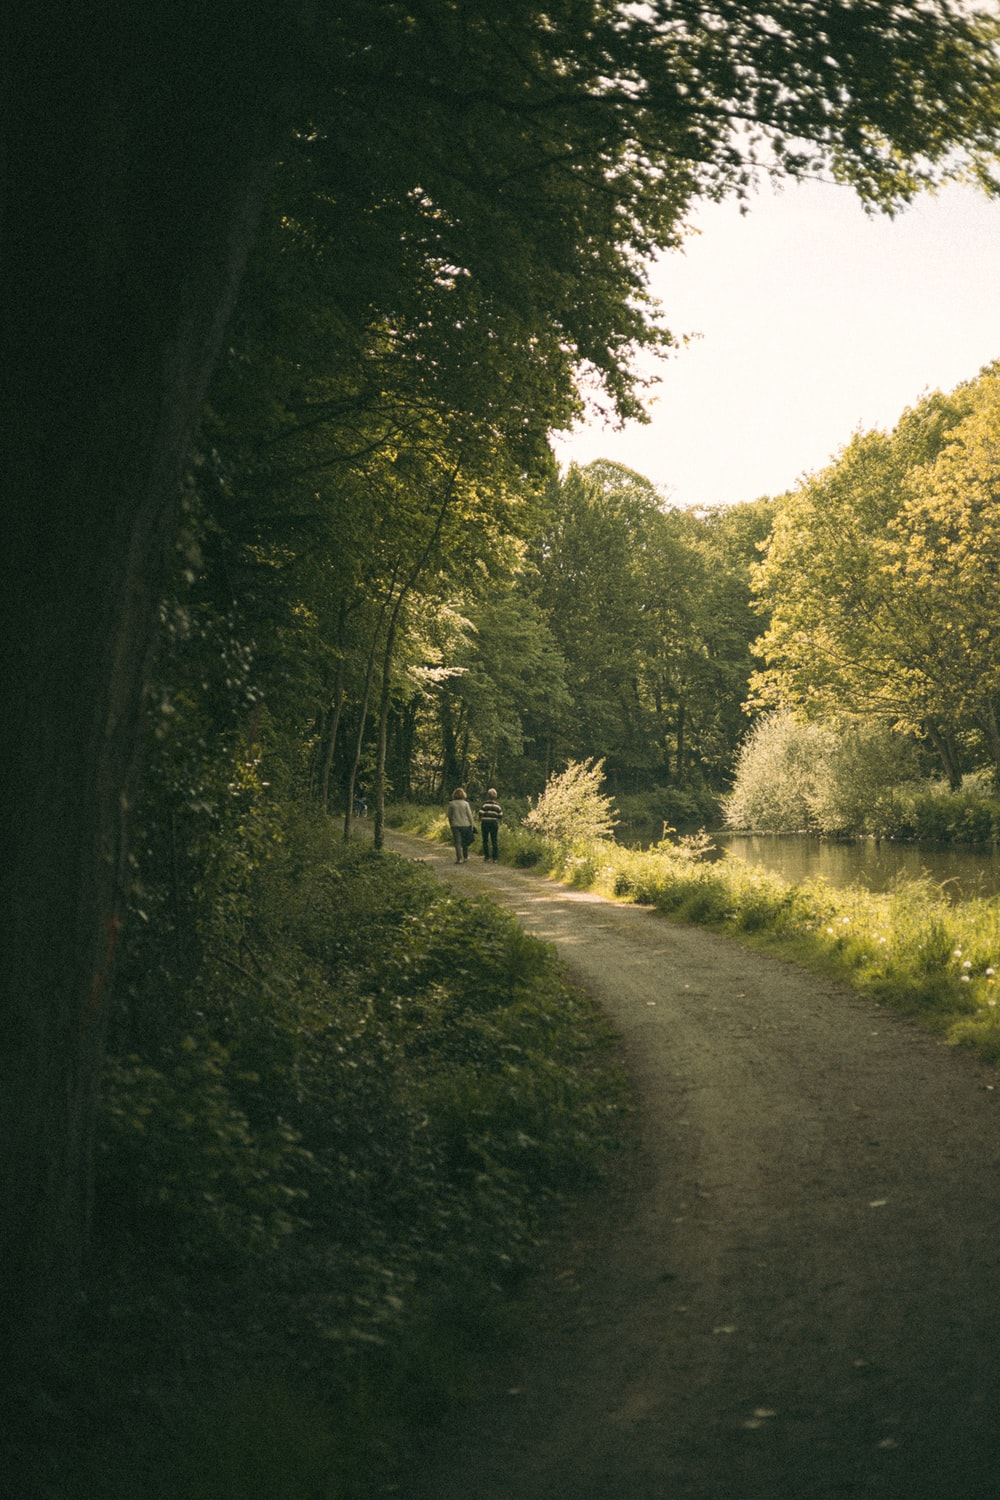 gray road between green trees during daytime